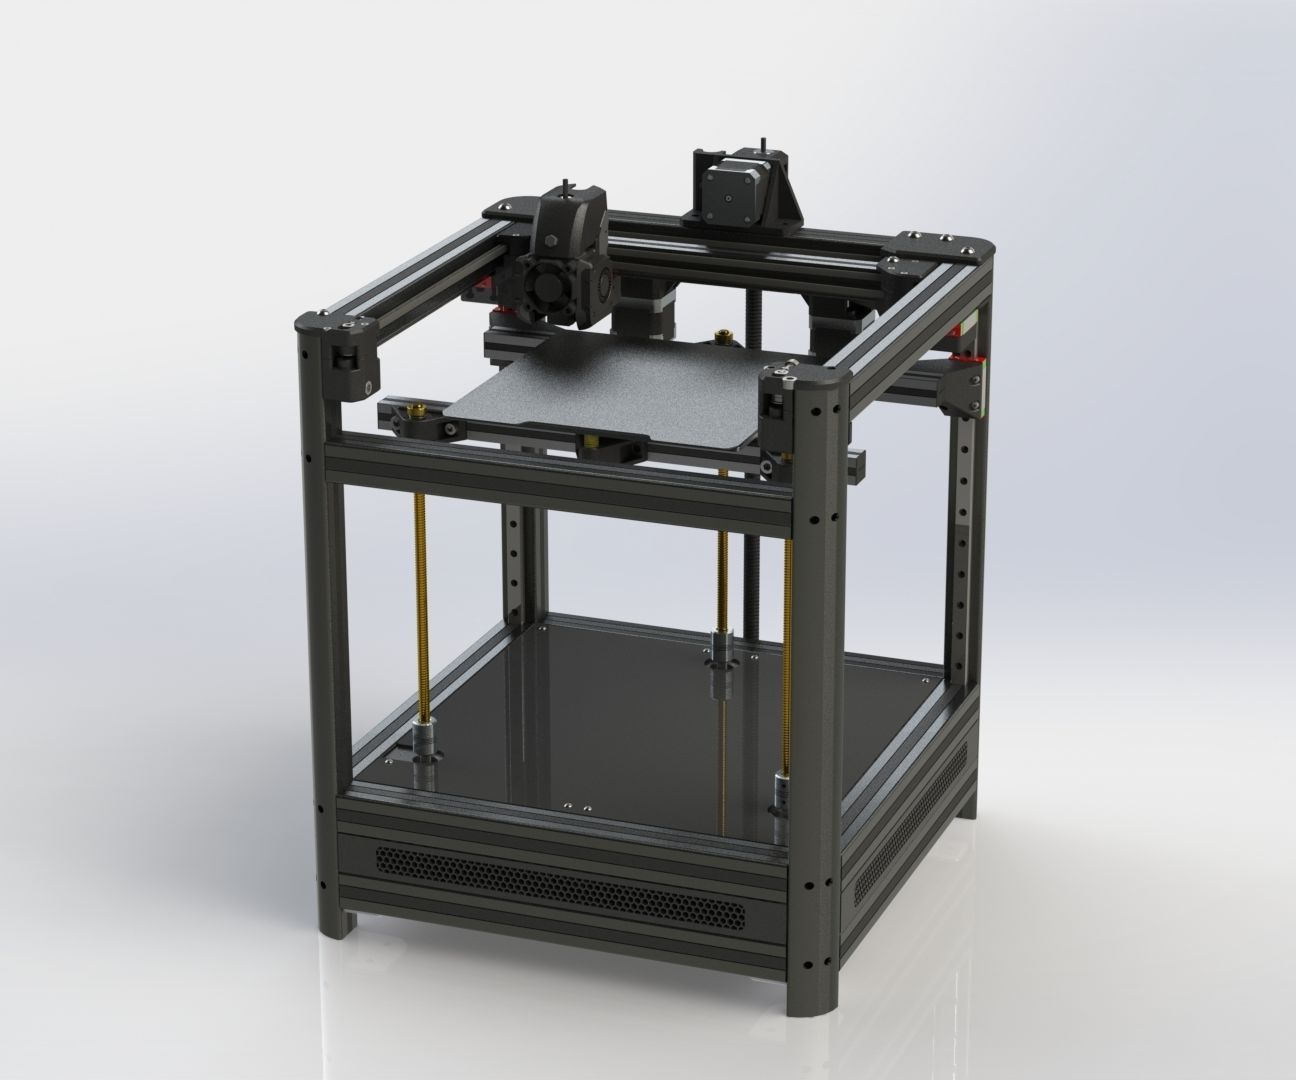 How to Design and Build a 3D Printer